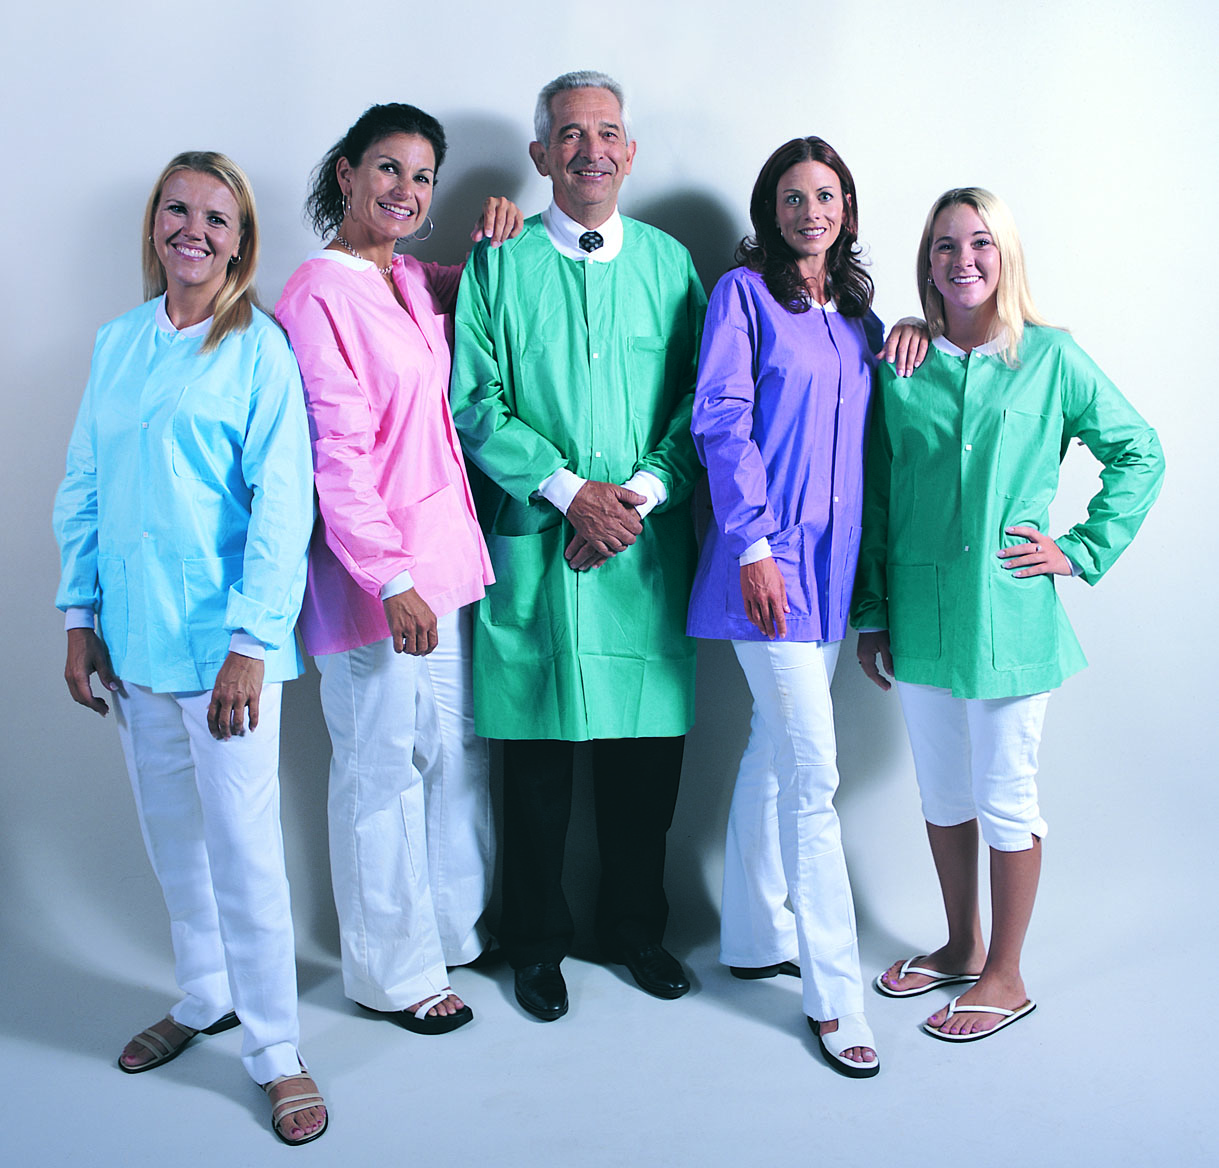 MedFlex Professional Jackets and Lab Coats